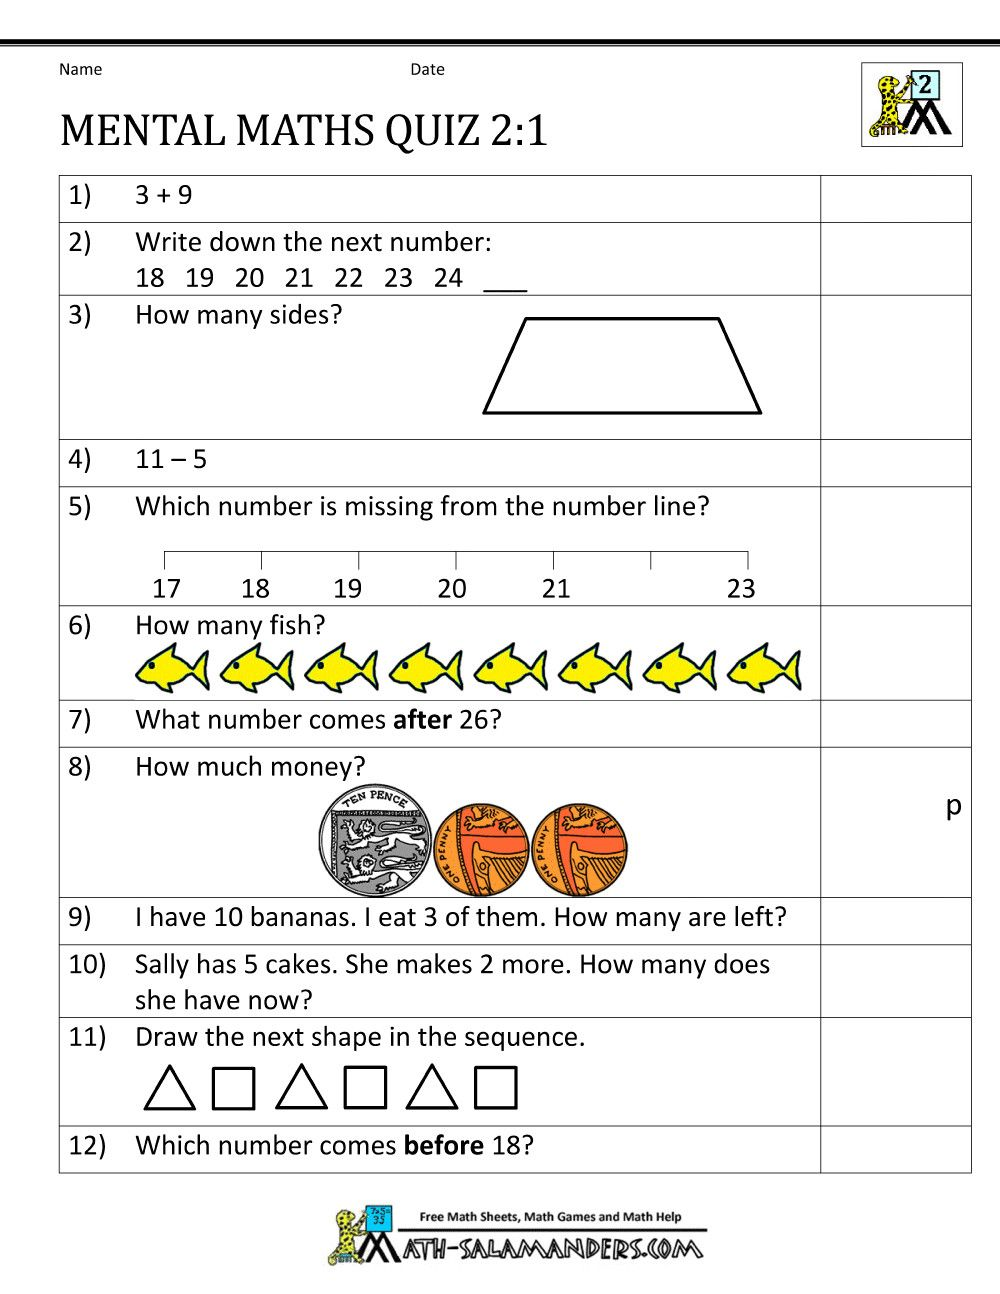 5 Mental Math Practice Worksheets In 2020 Math Practice Worksheets Math Worksheets Mental Maths Worksheets